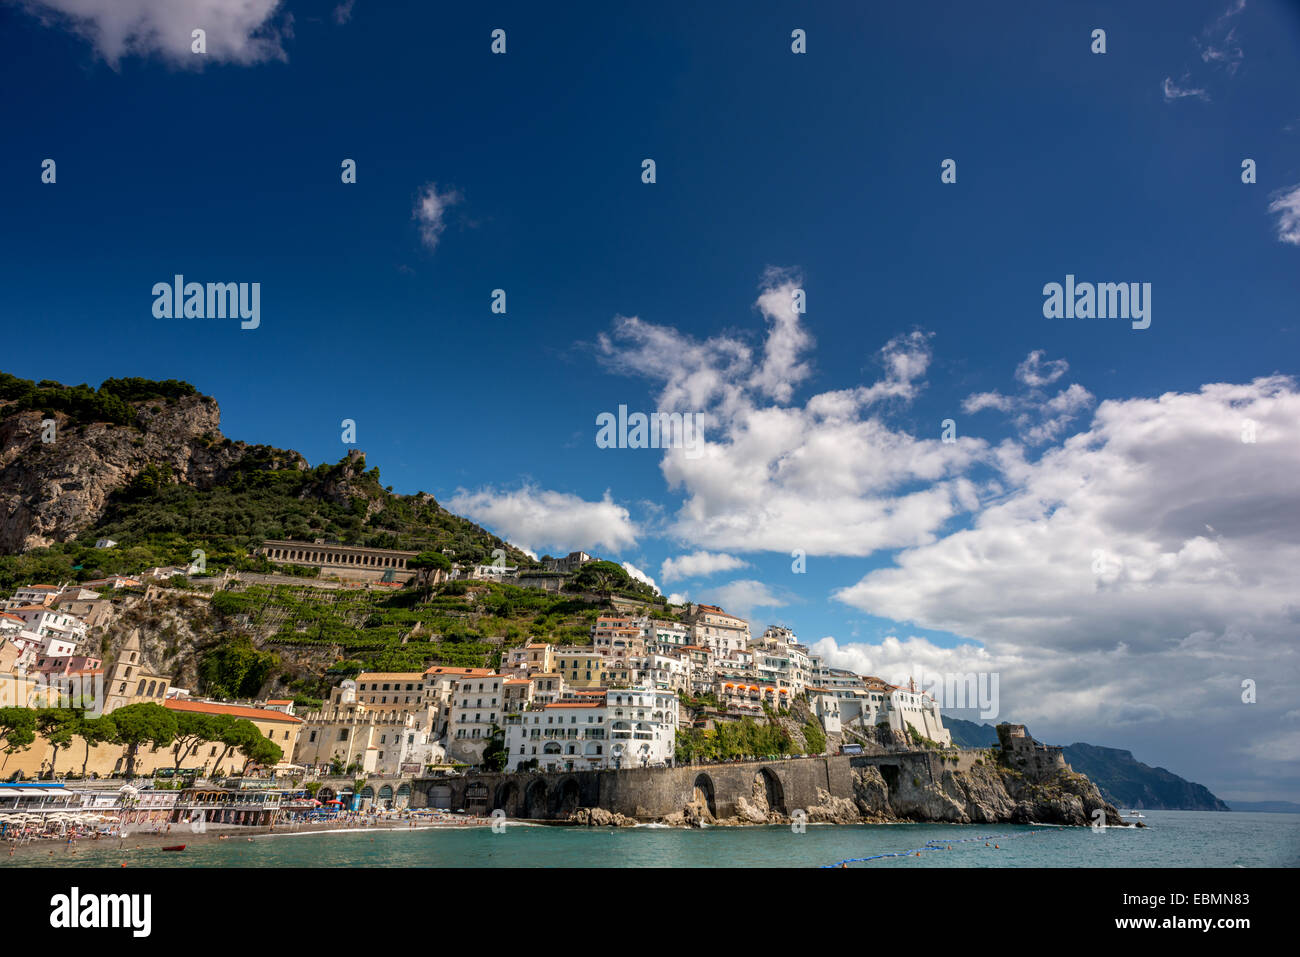 Cliffs at the town of Amalfi in Campania, Italy. - Stock Image